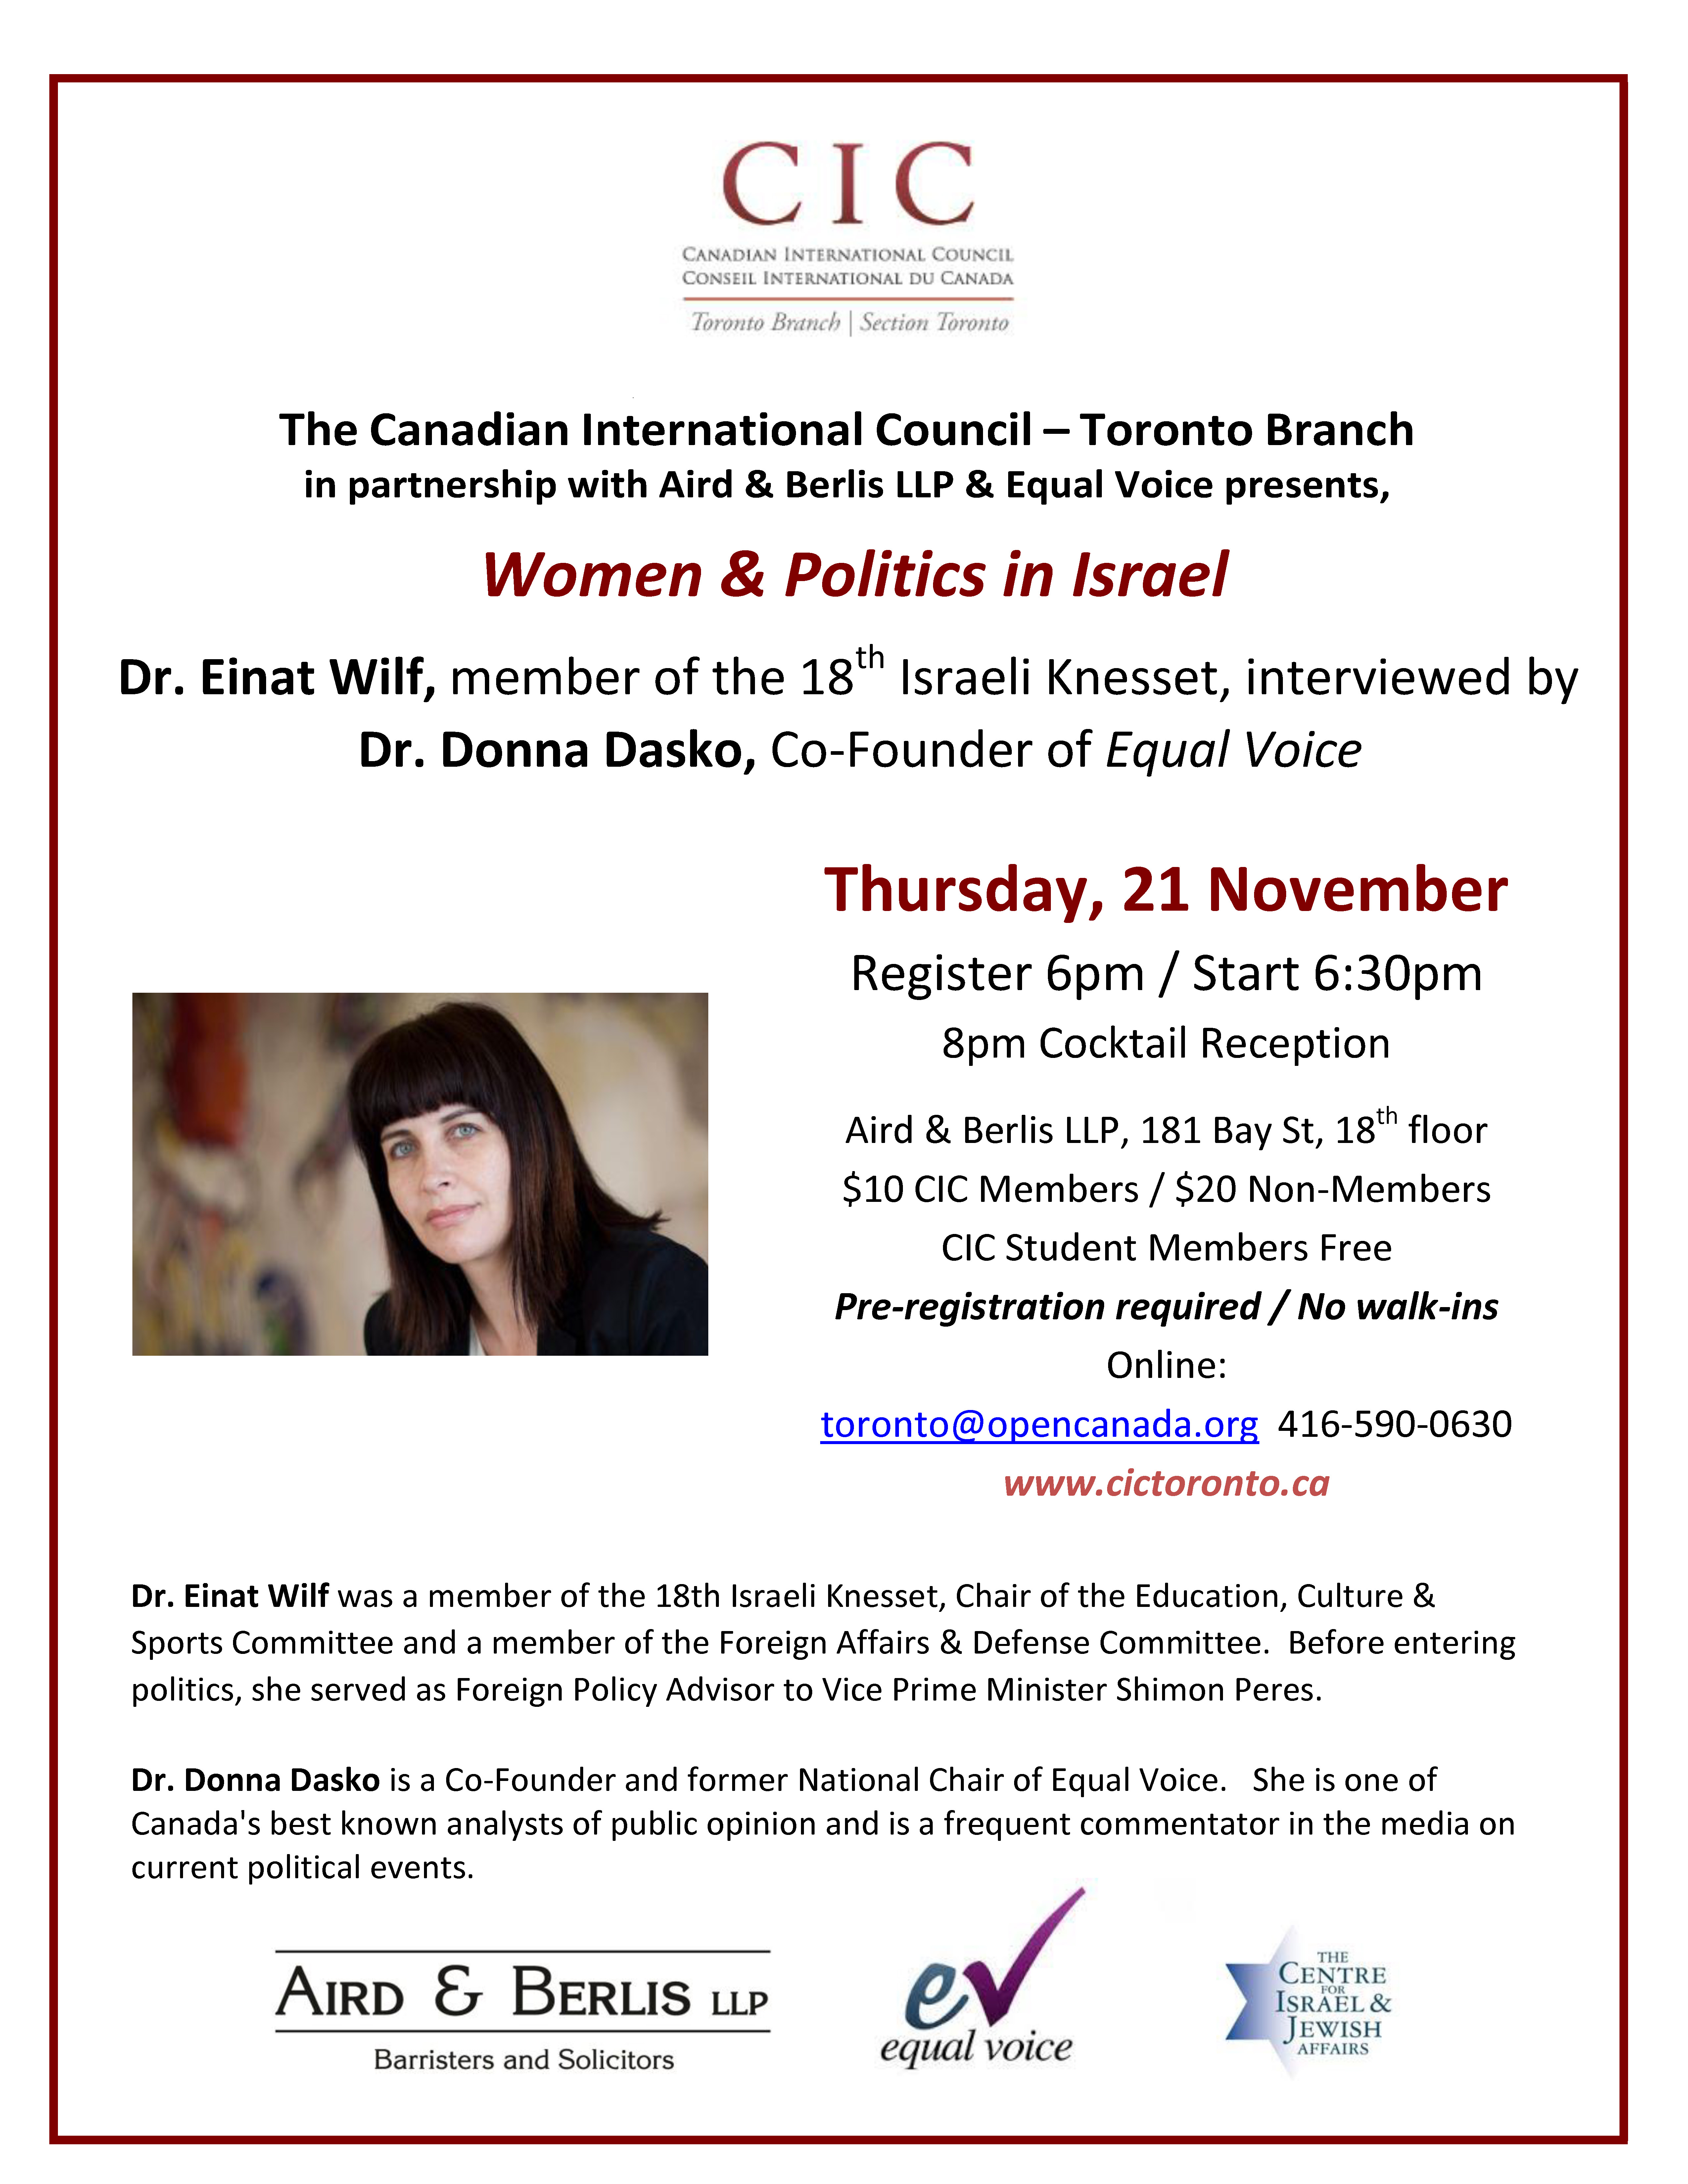 Flyer for 21 November Women & Politics in Israel FINAL for distribution[2]